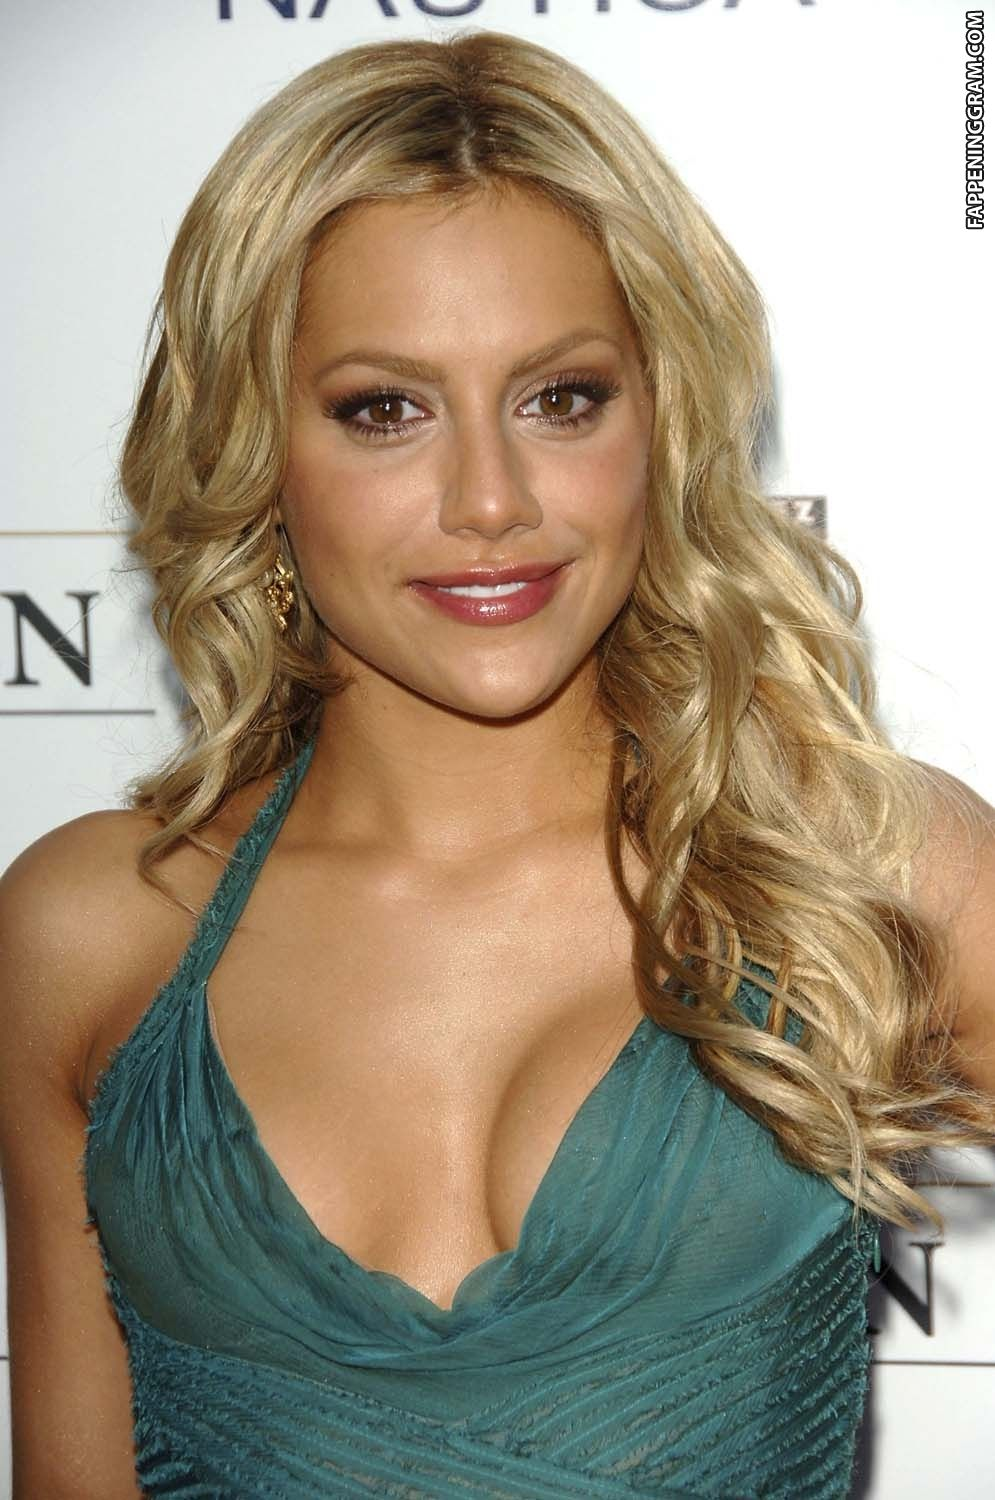 Brittany Murphy Nude The Fappening - FappeningGram